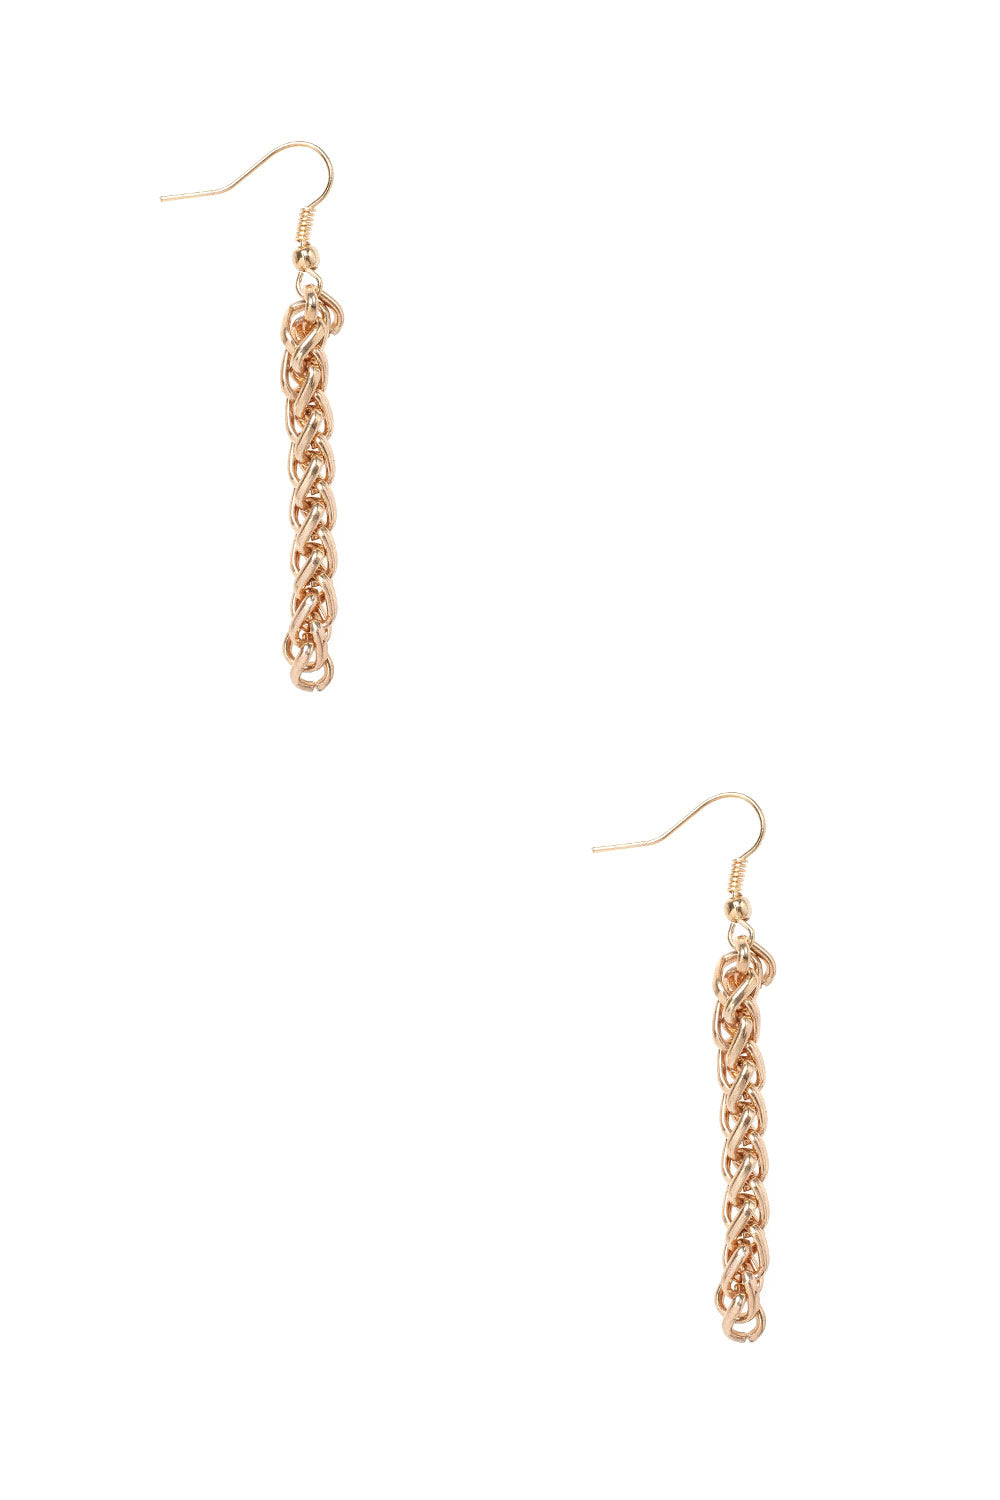 Type 3 Strong Willed Earrings